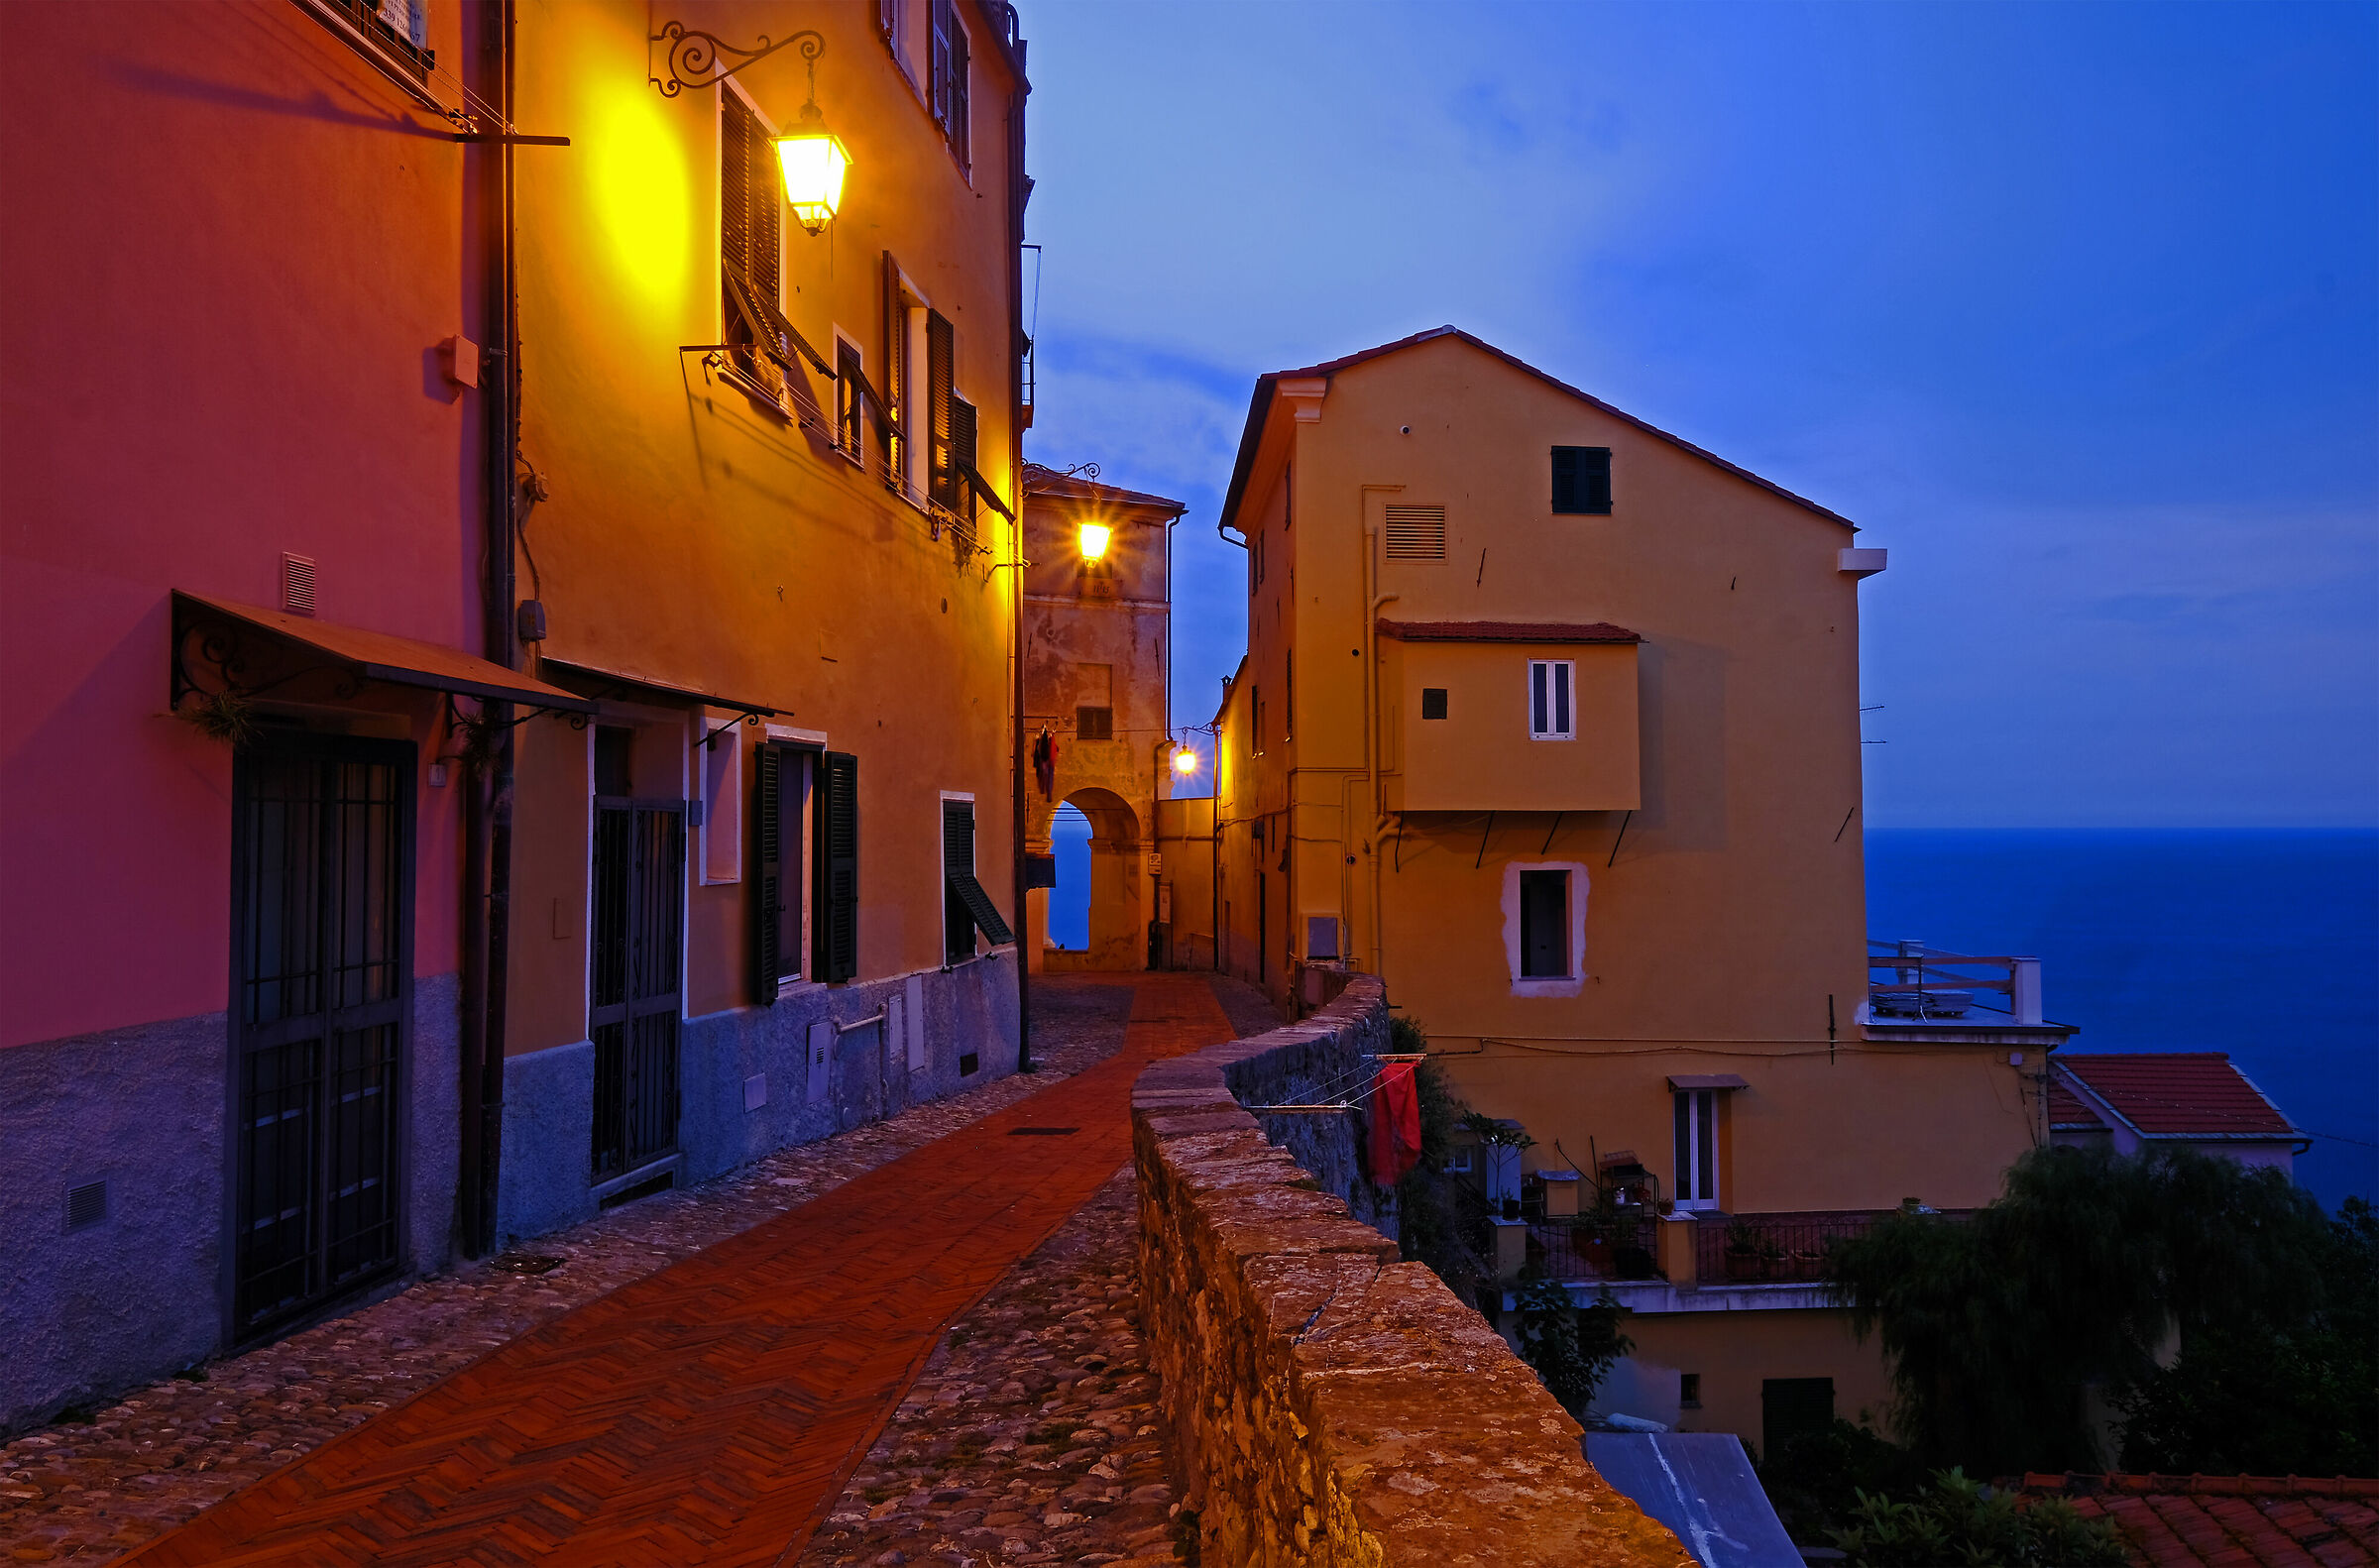 The evening falls on the ancient village...